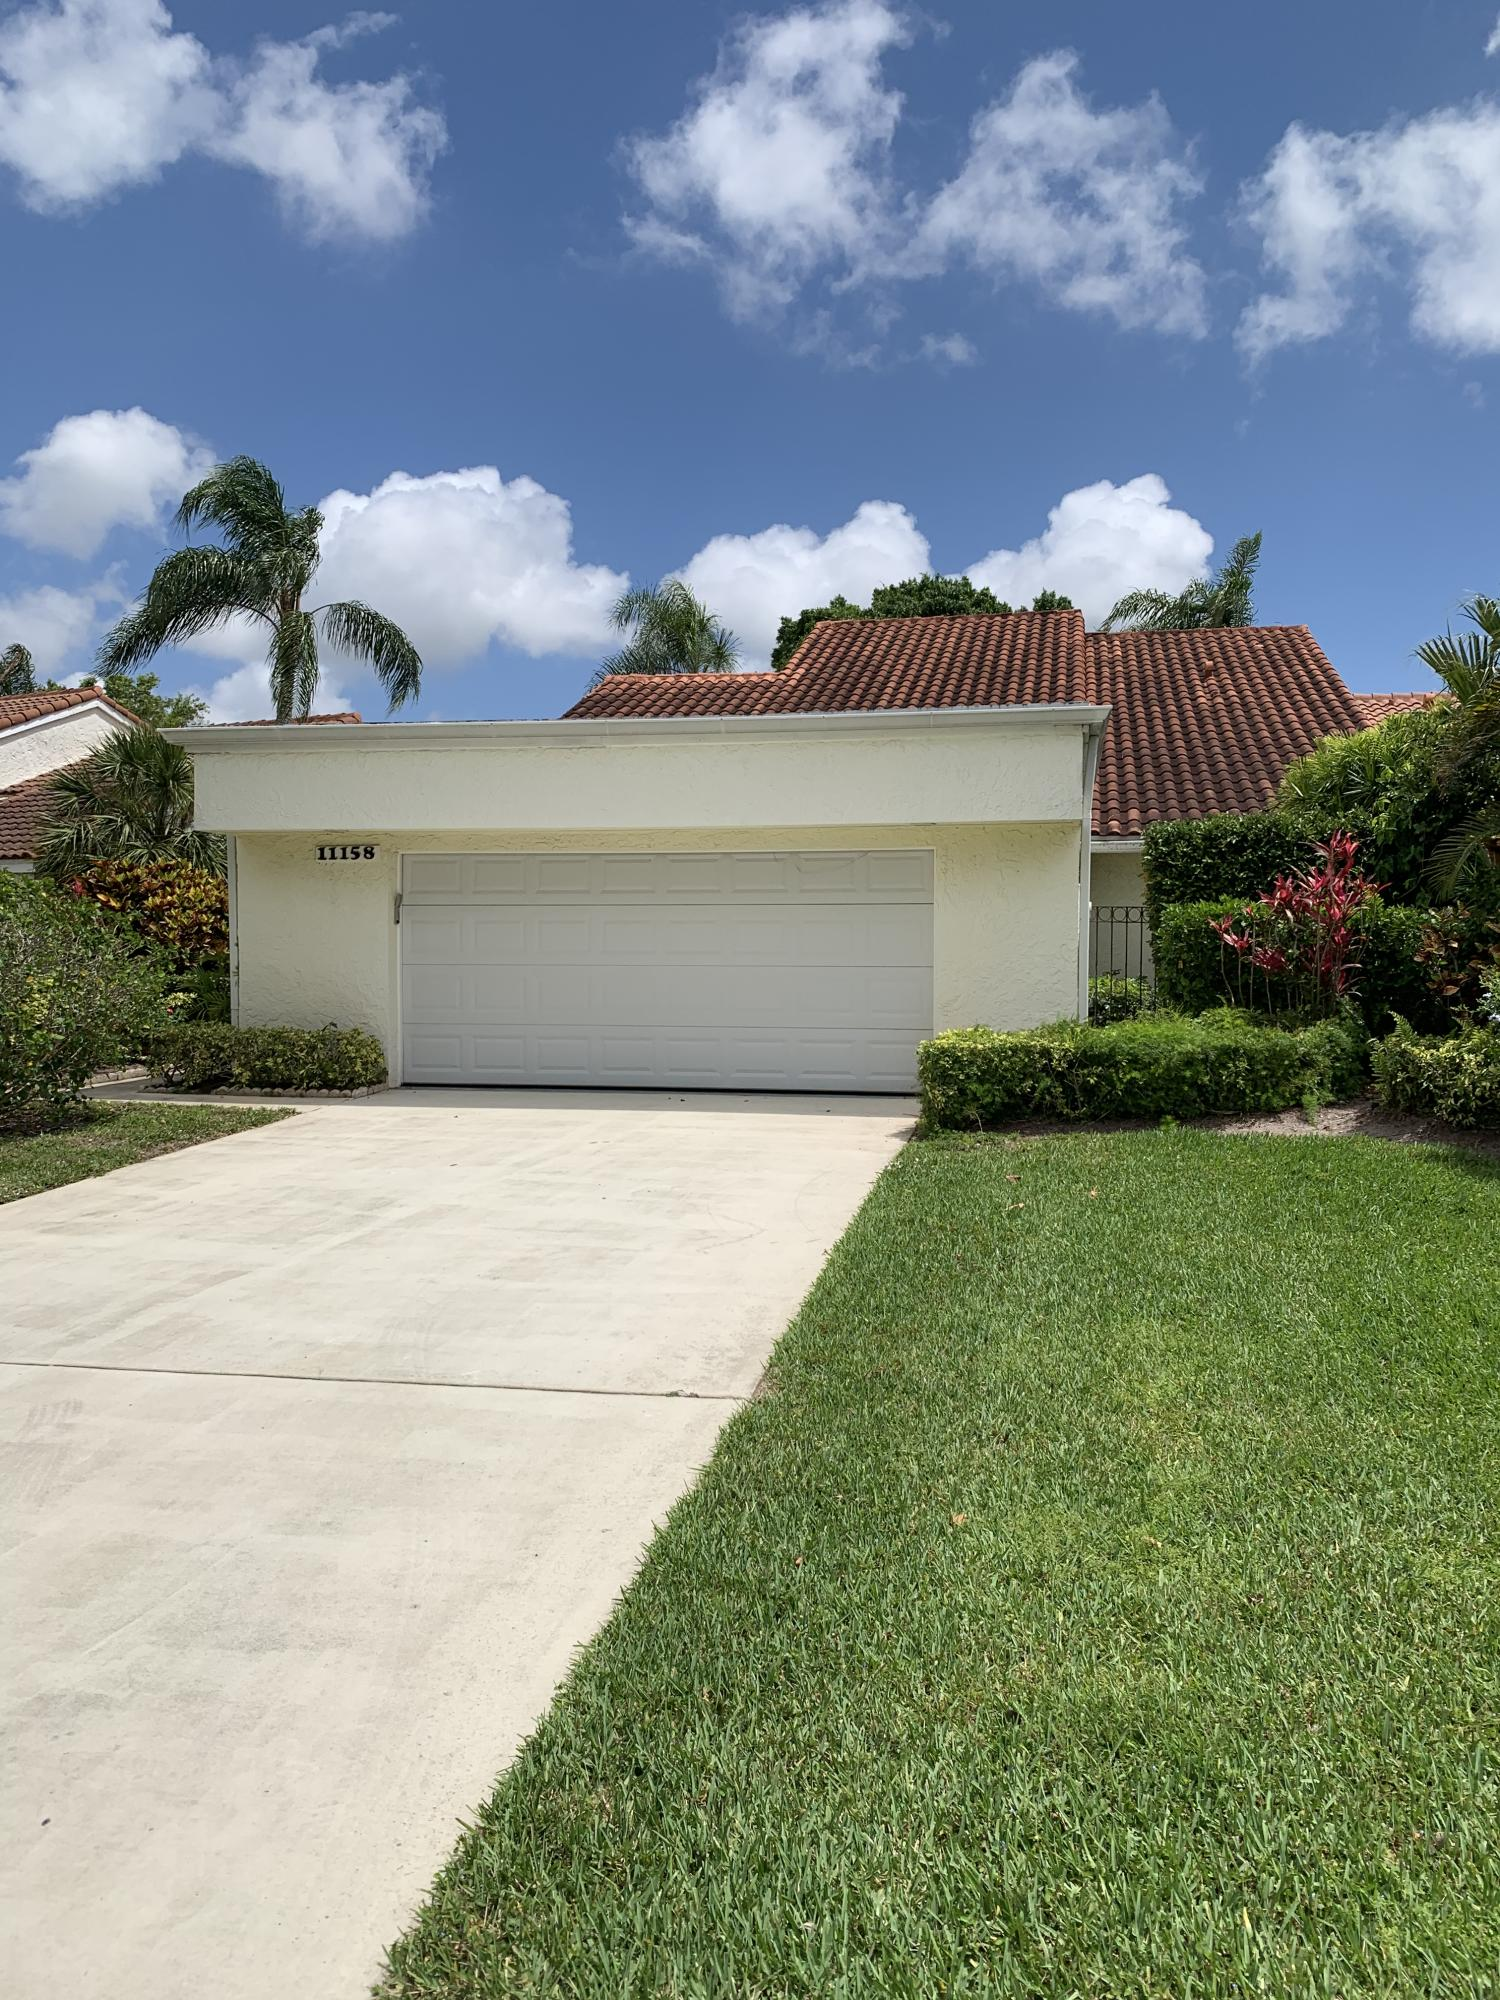 11158 Stonybrook Lane  Boynton Beach, FL 33437